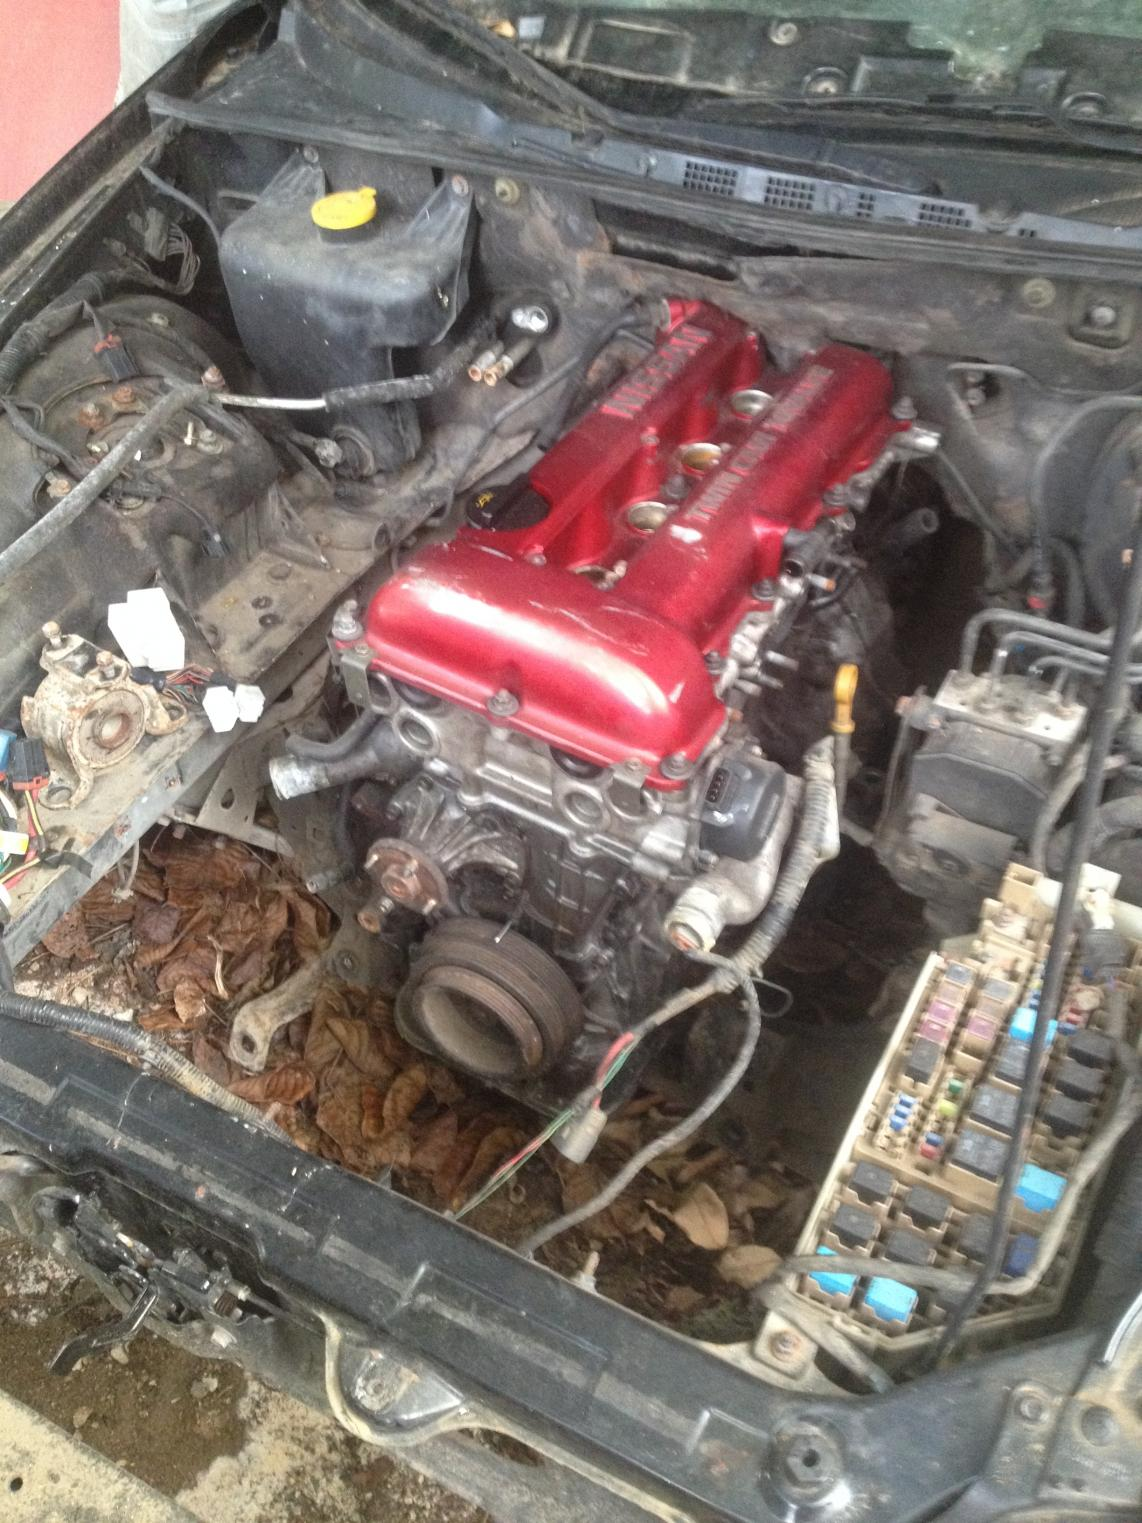 hight resolution of ford taurus engine diagram chrysler town country engine 2005 mazda rx 8 interior 2005 mazda rx 8 problems